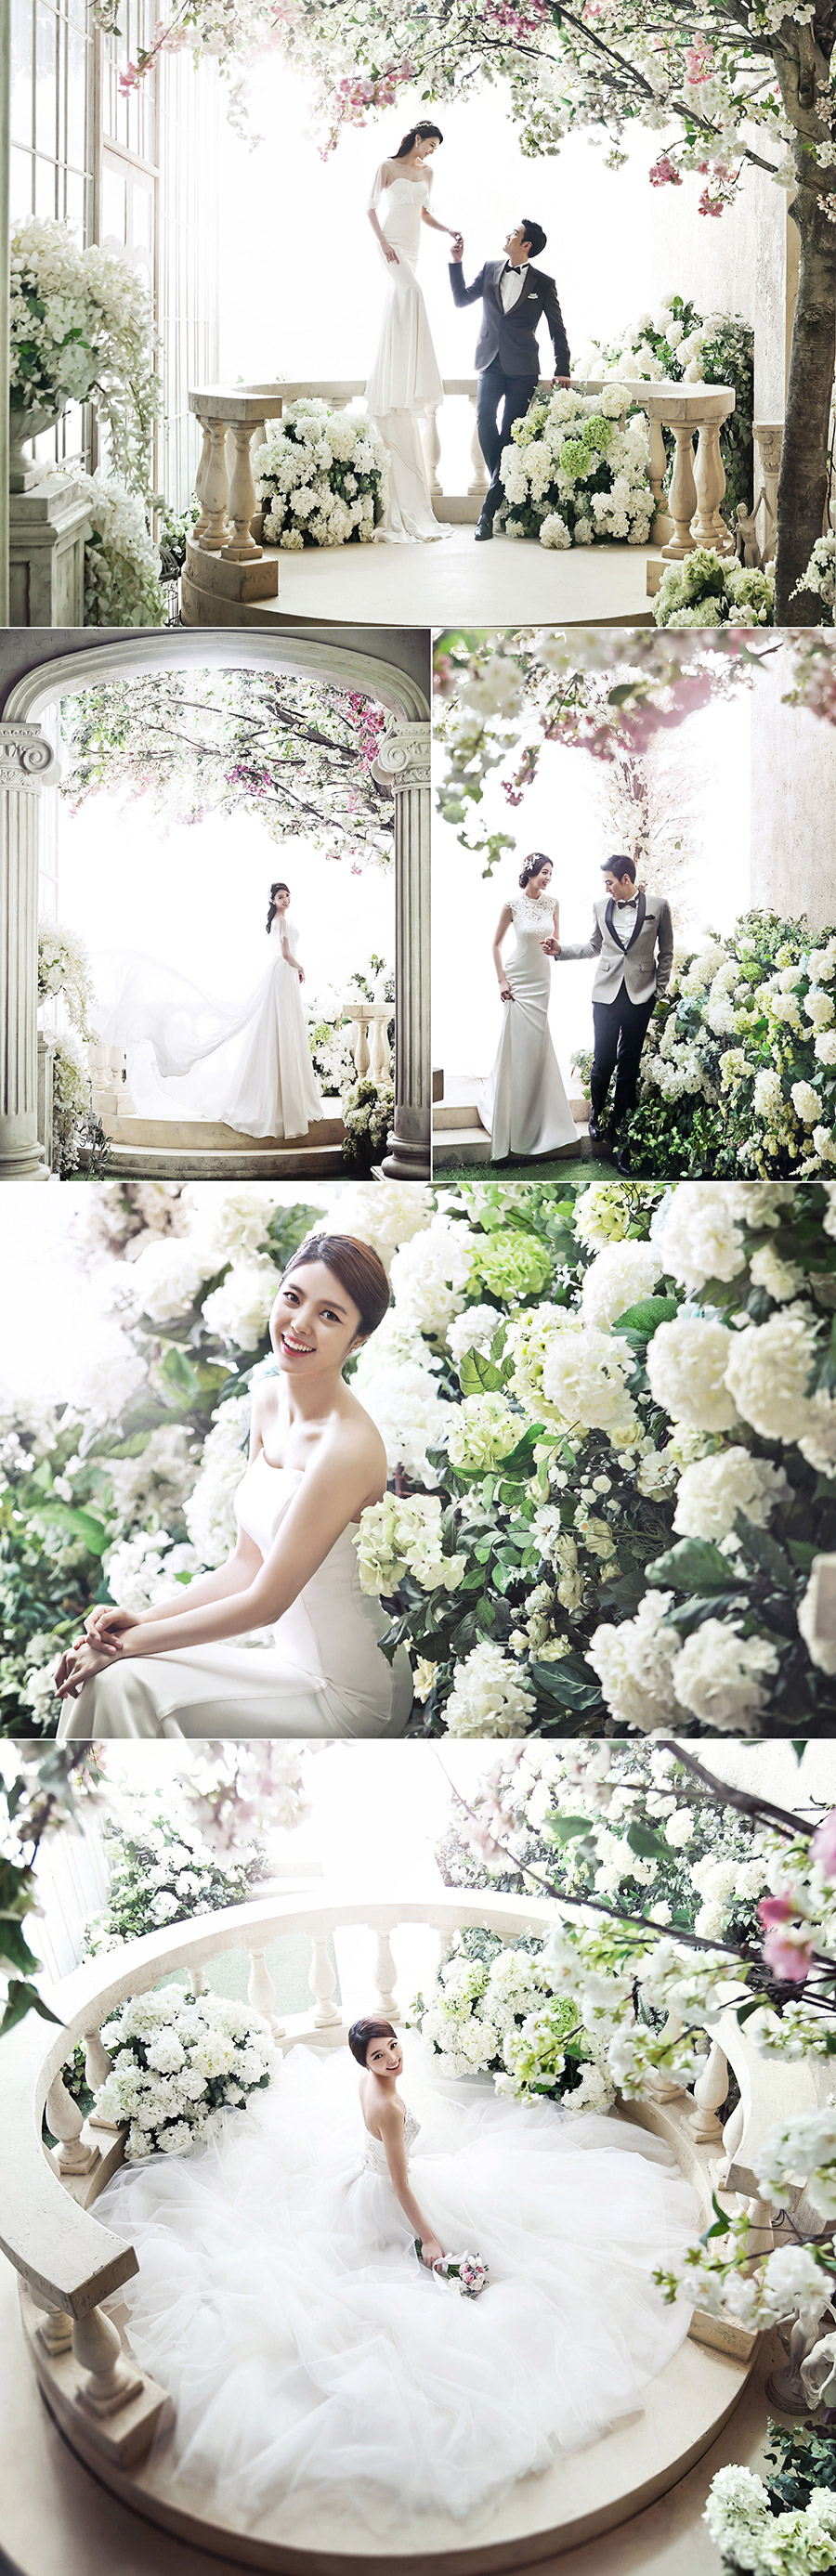 Korean Wedding Photo Concept Pium Studio Fl